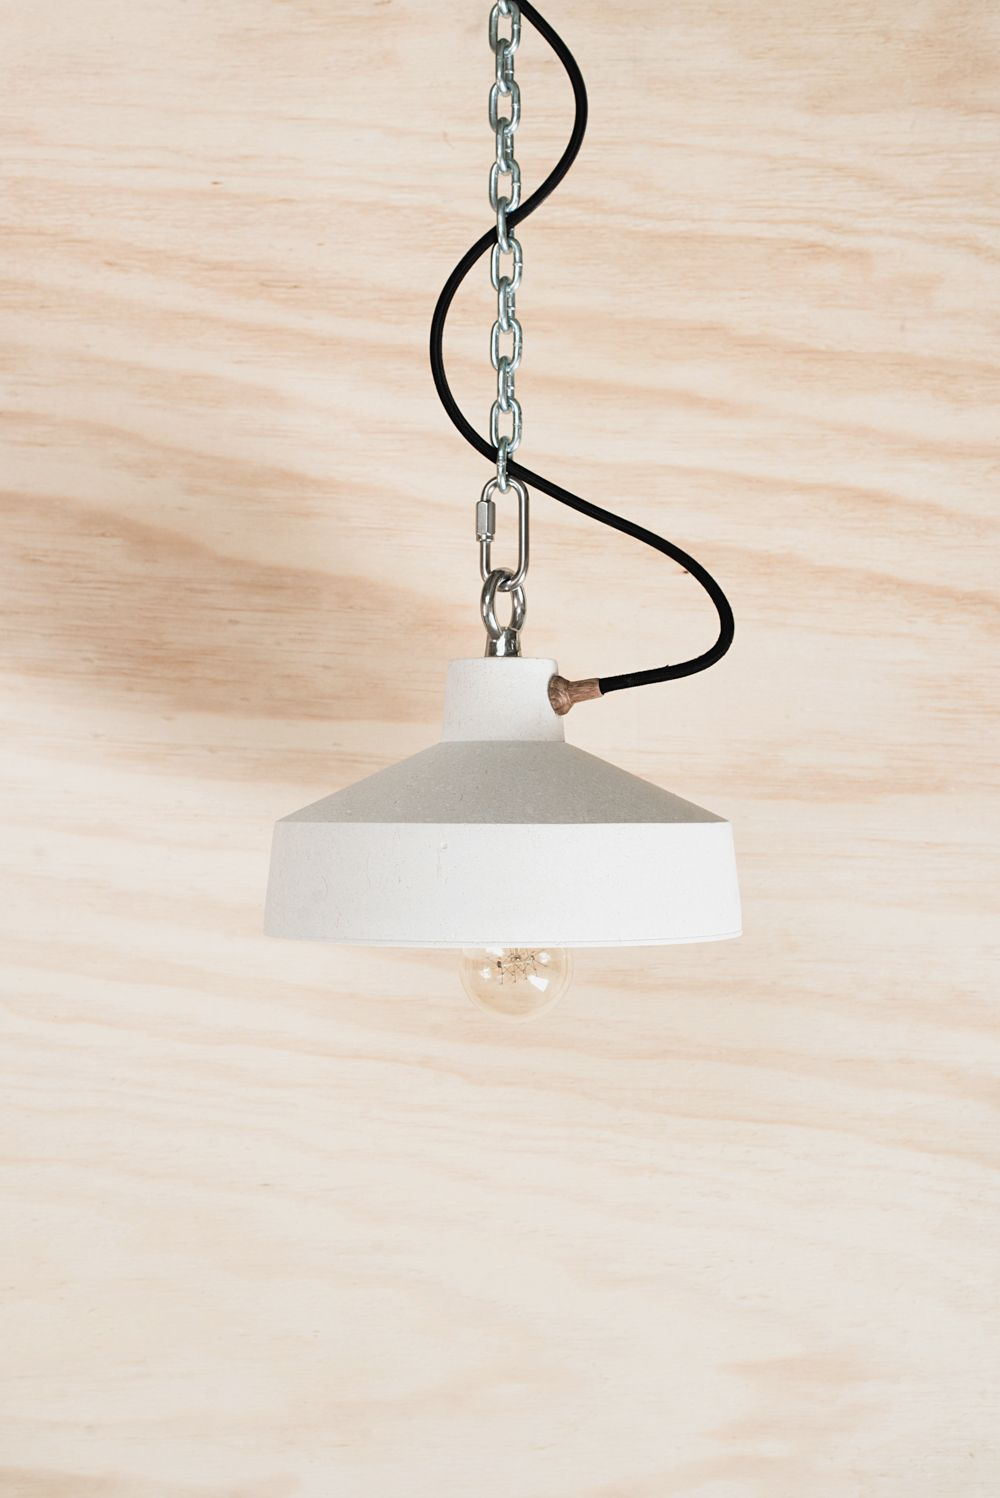 contemporary lighting melbourne. Turned Out Of South Australian Limestone \u2013 Giving Them A Unique Texture And Organic Tactility Not Often Seen In Contemporary Lighting Melbourne